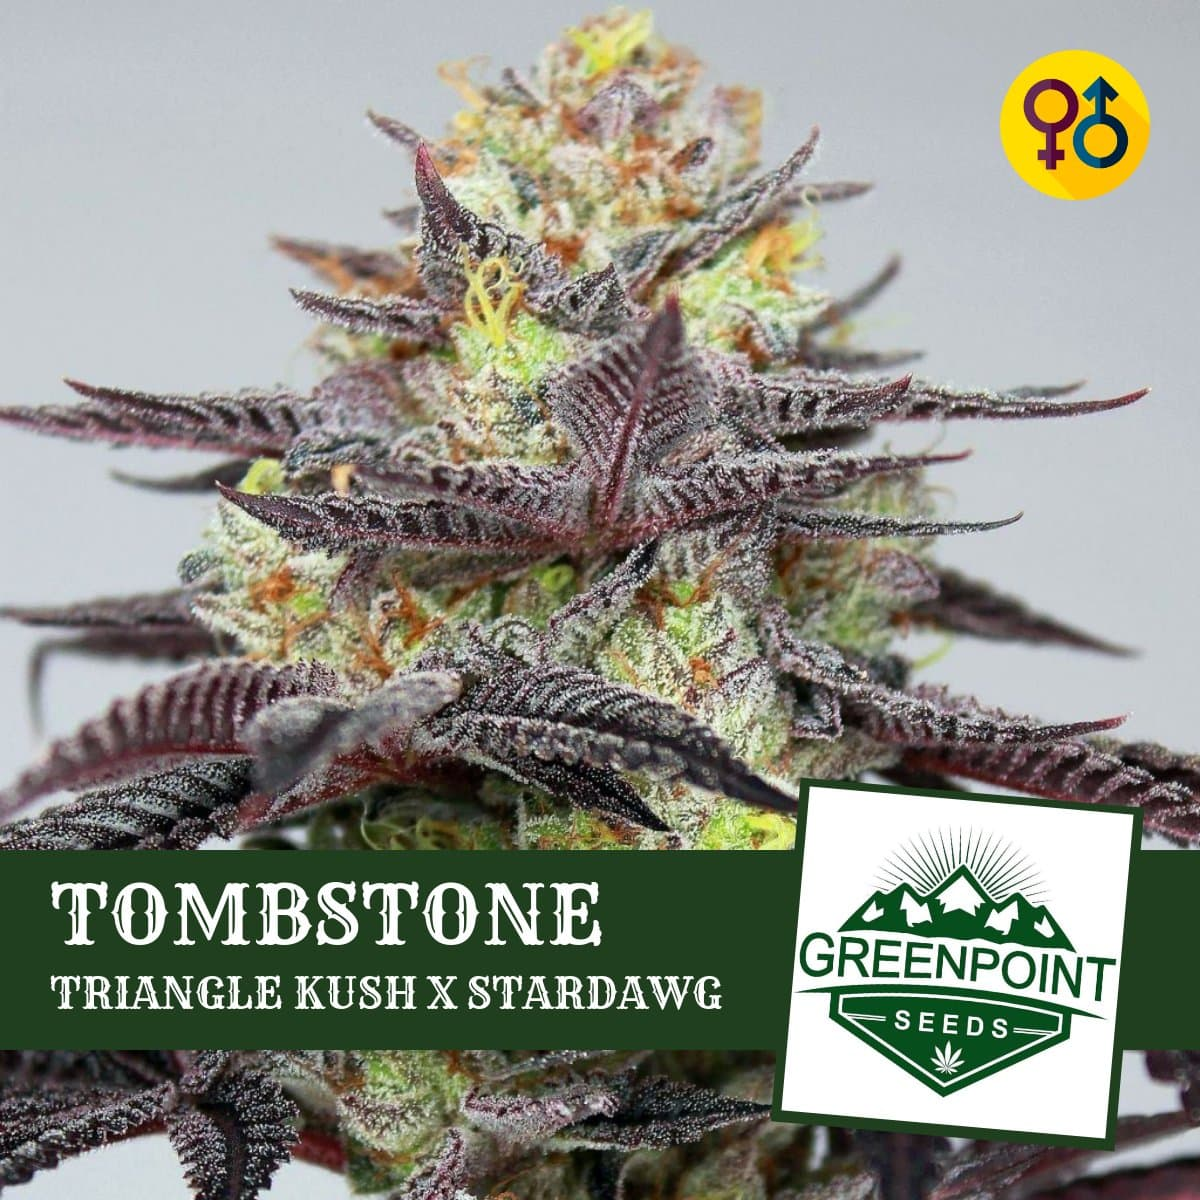 Tombstone Cannabis Seeds - Triangle Kush Strain | Greenpoint Seeds